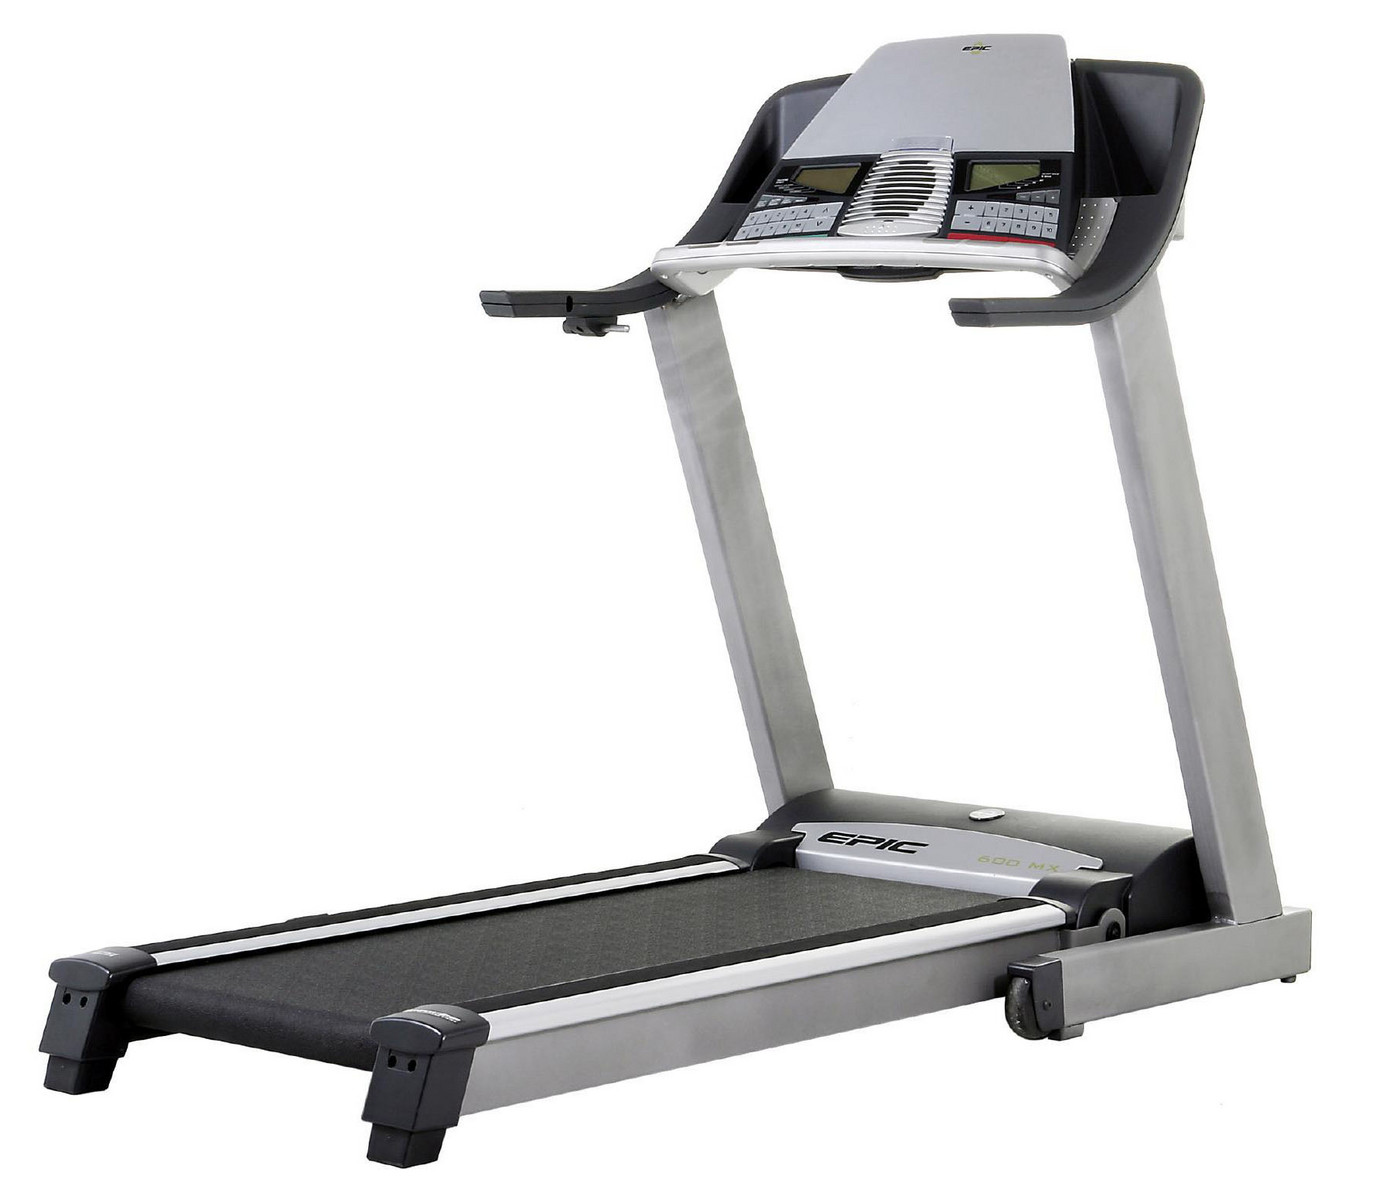 Epic 450 MX Treadmill 0 0 This Truly Is Our Review Of The H Miracle